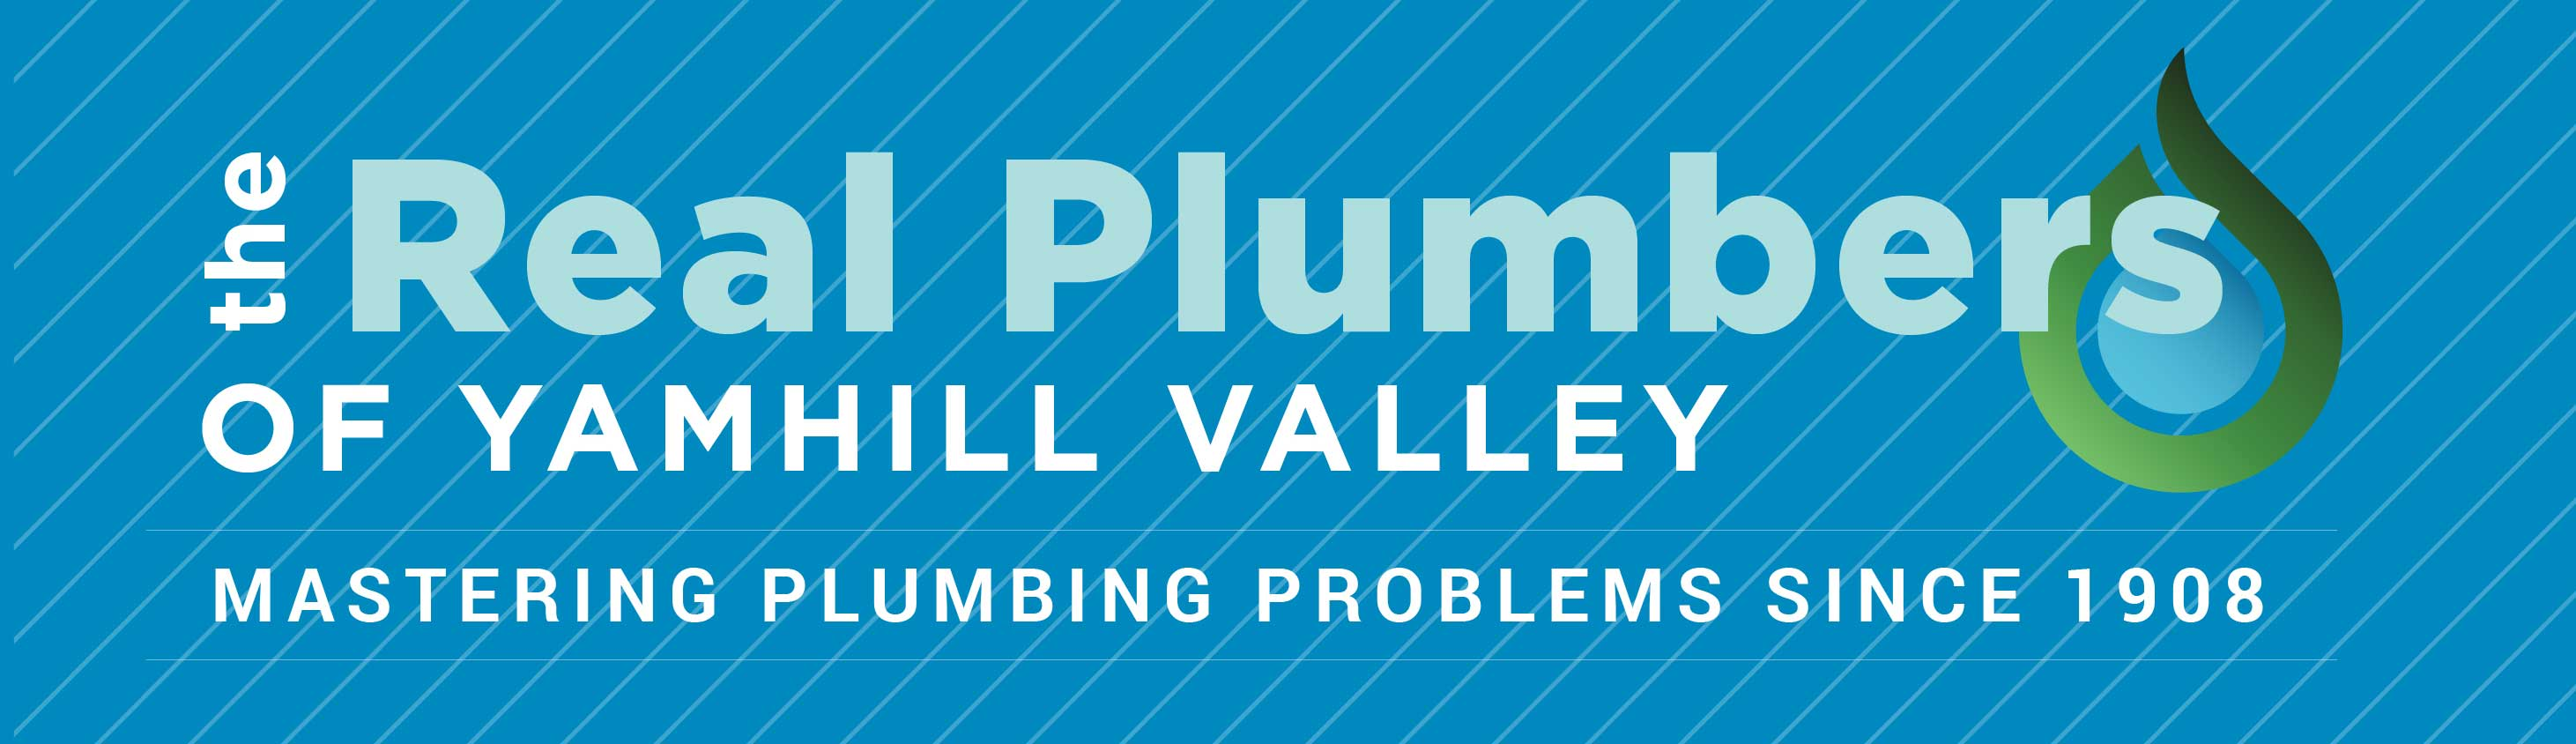 The Real Plumbers of Yamhill Valley - Mastering Plumbing Problems Since 1908